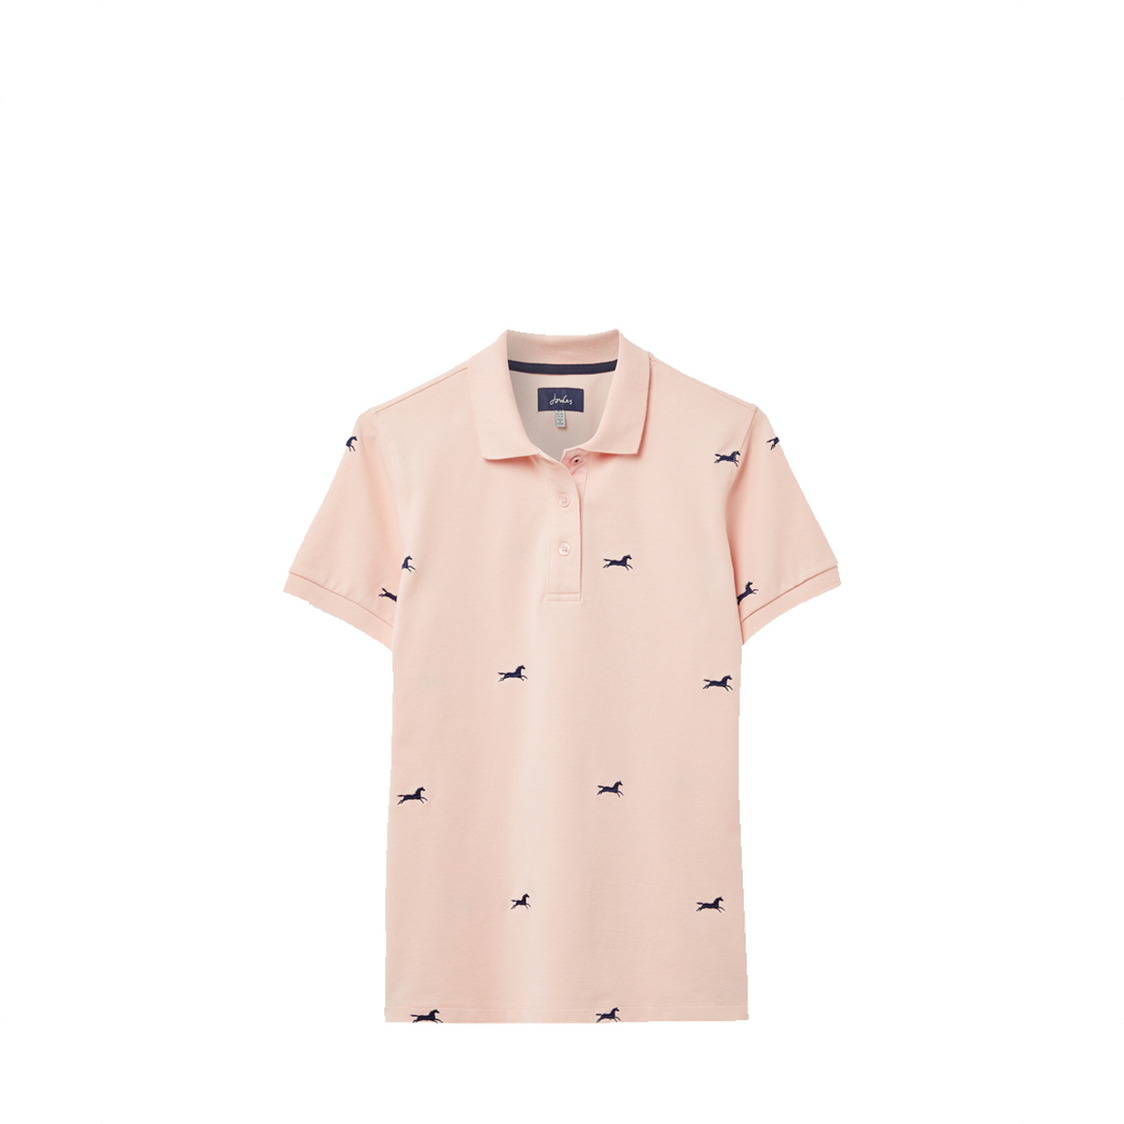 Tom Joule Pippa Printed Polo Shirt Pink Horse